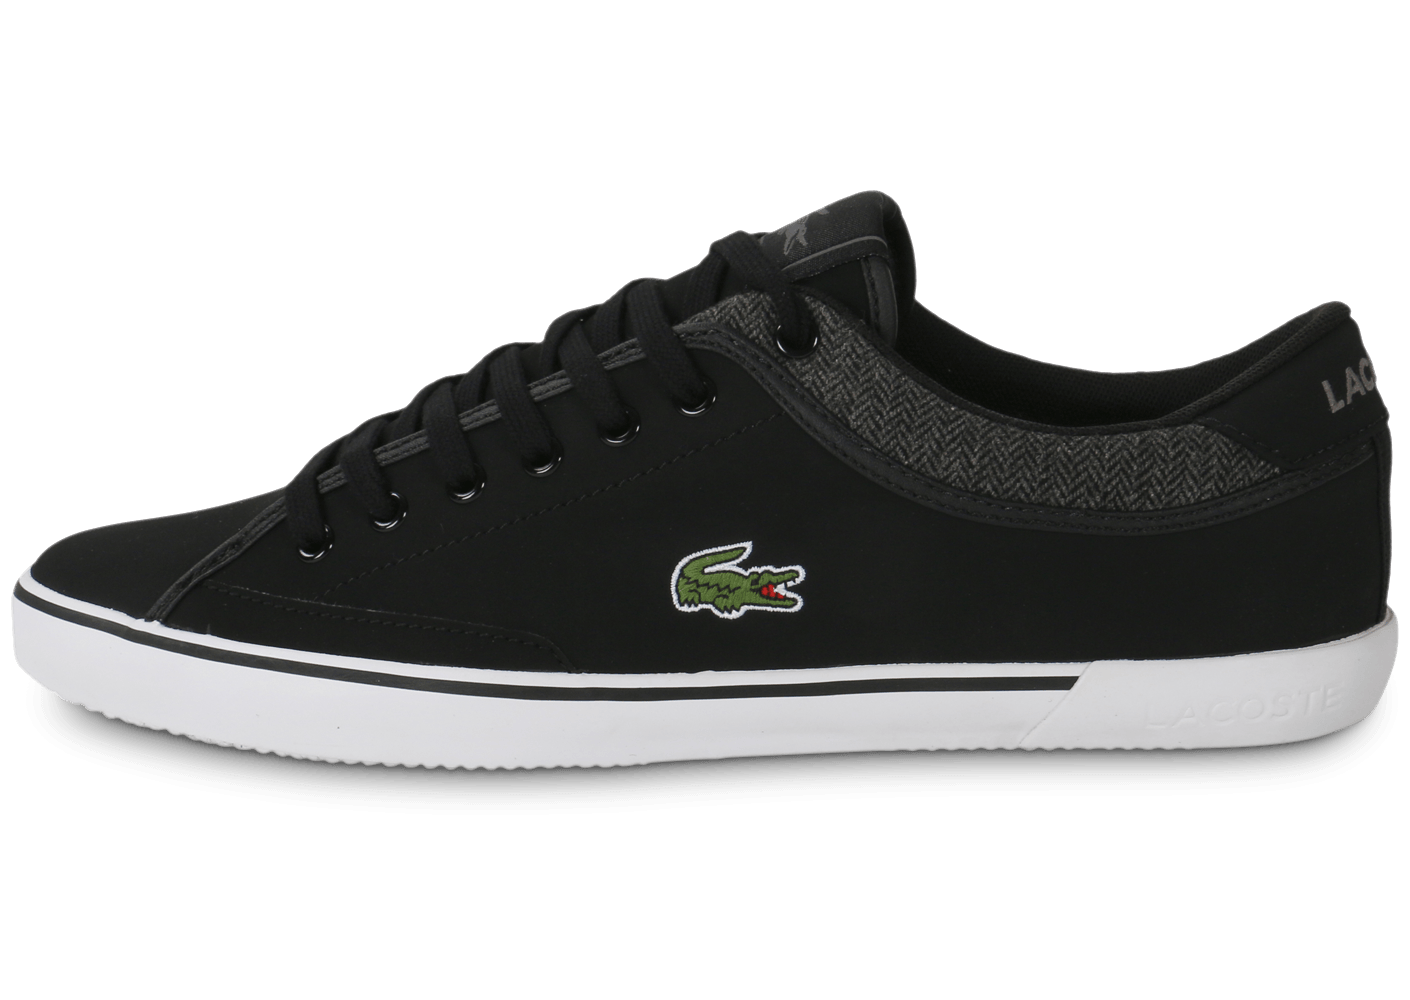 lacoste angha leather noire chaussures homme chausport. Black Bedroom Furniture Sets. Home Design Ideas